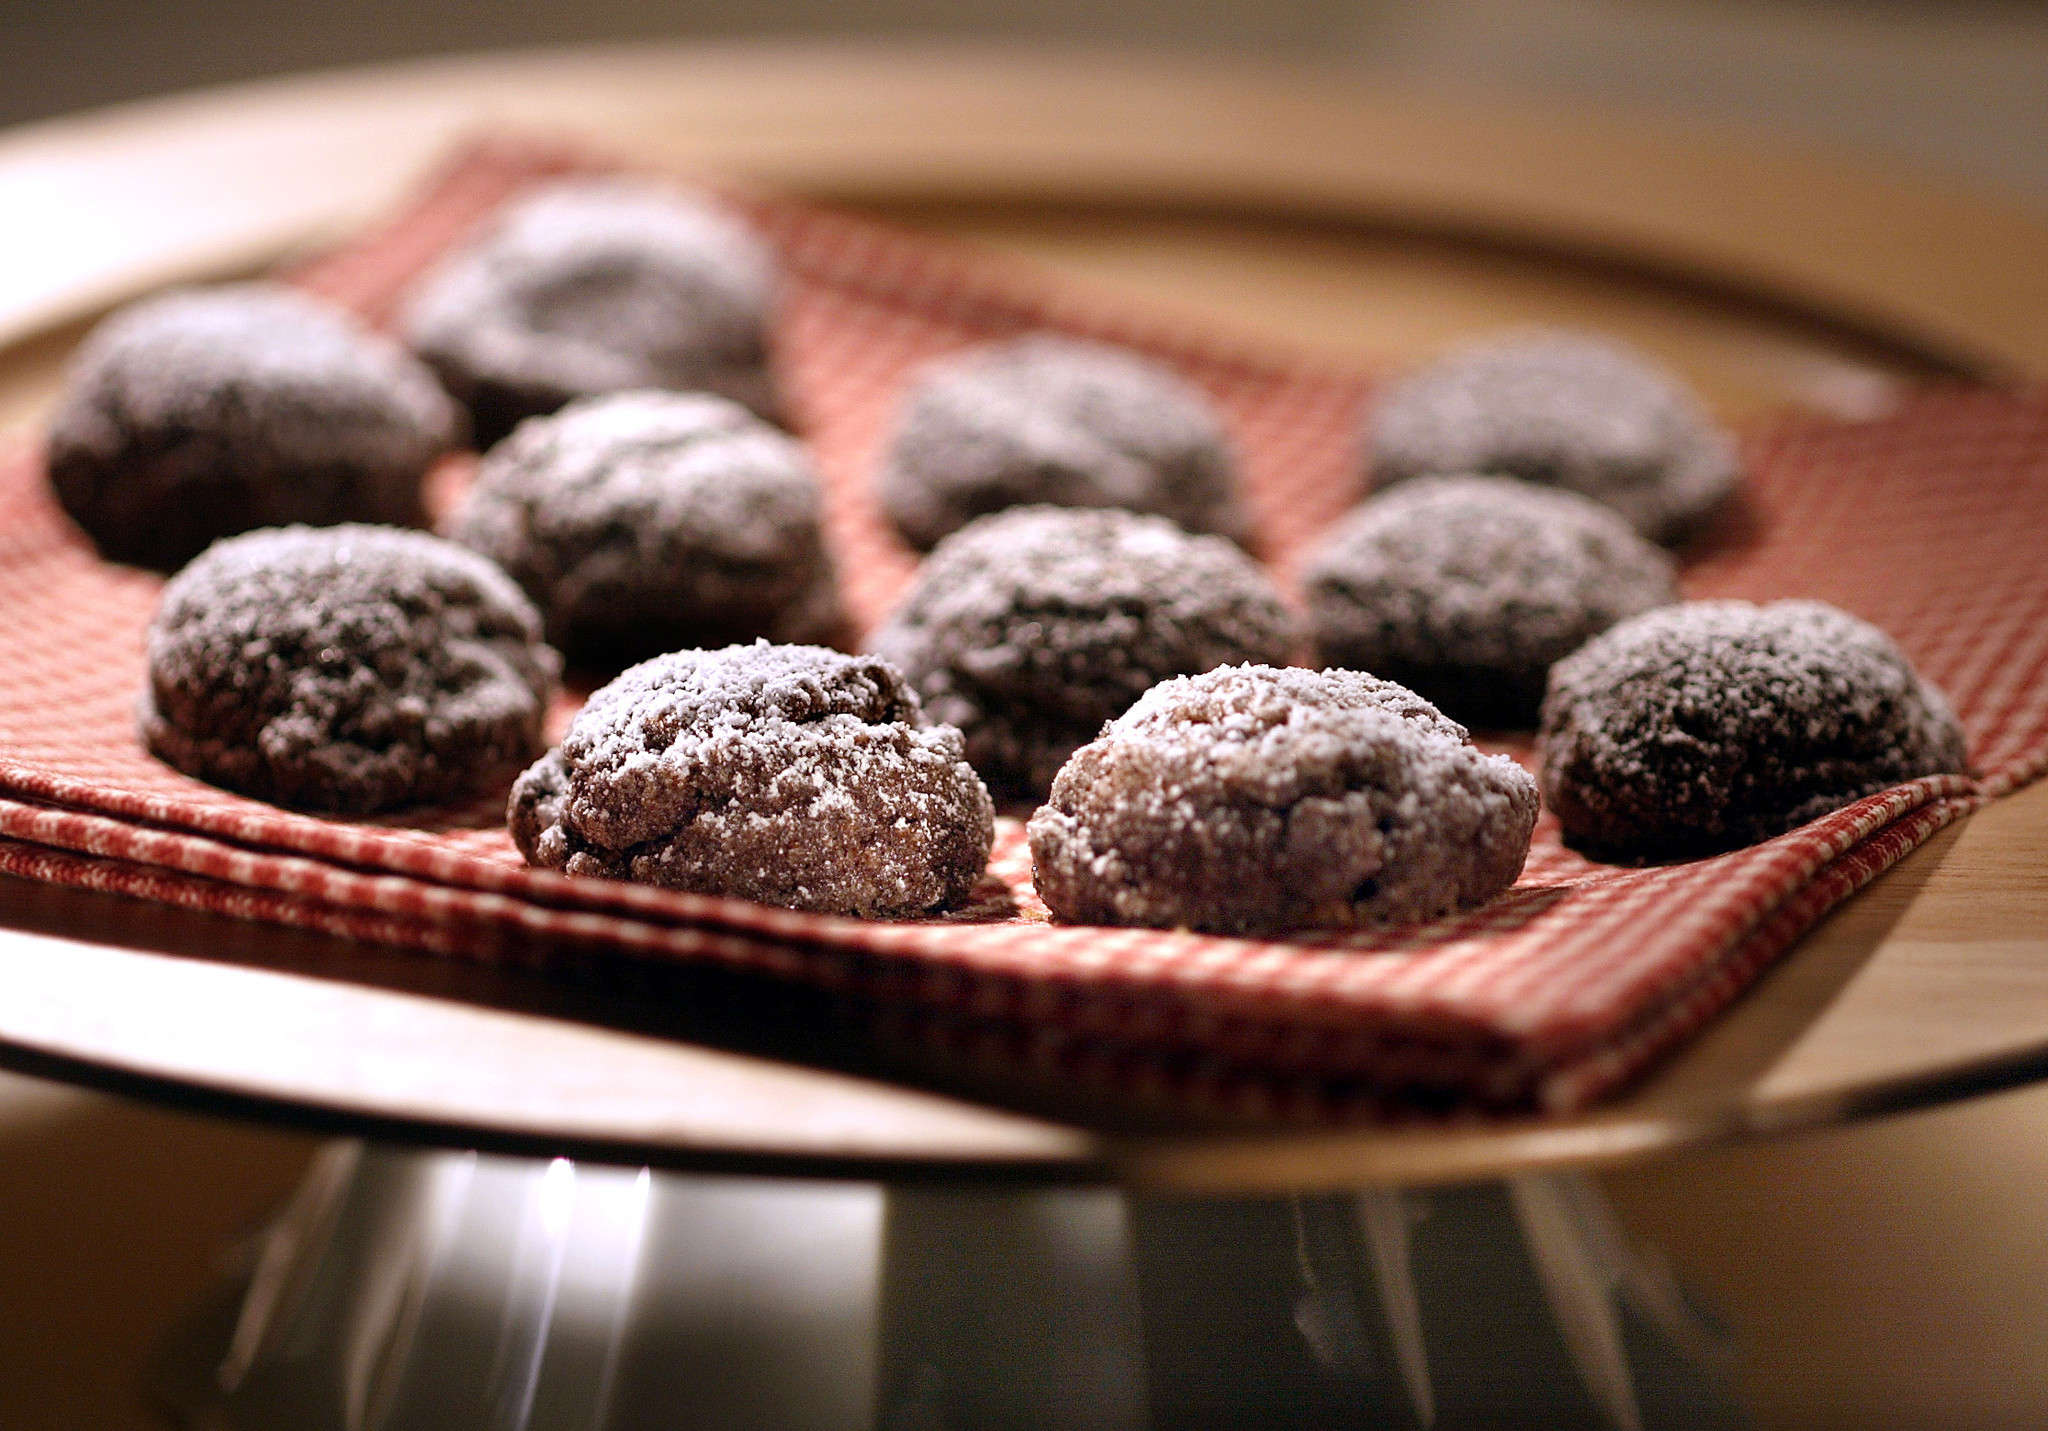 These chocolate sparkle cookies will make you happy